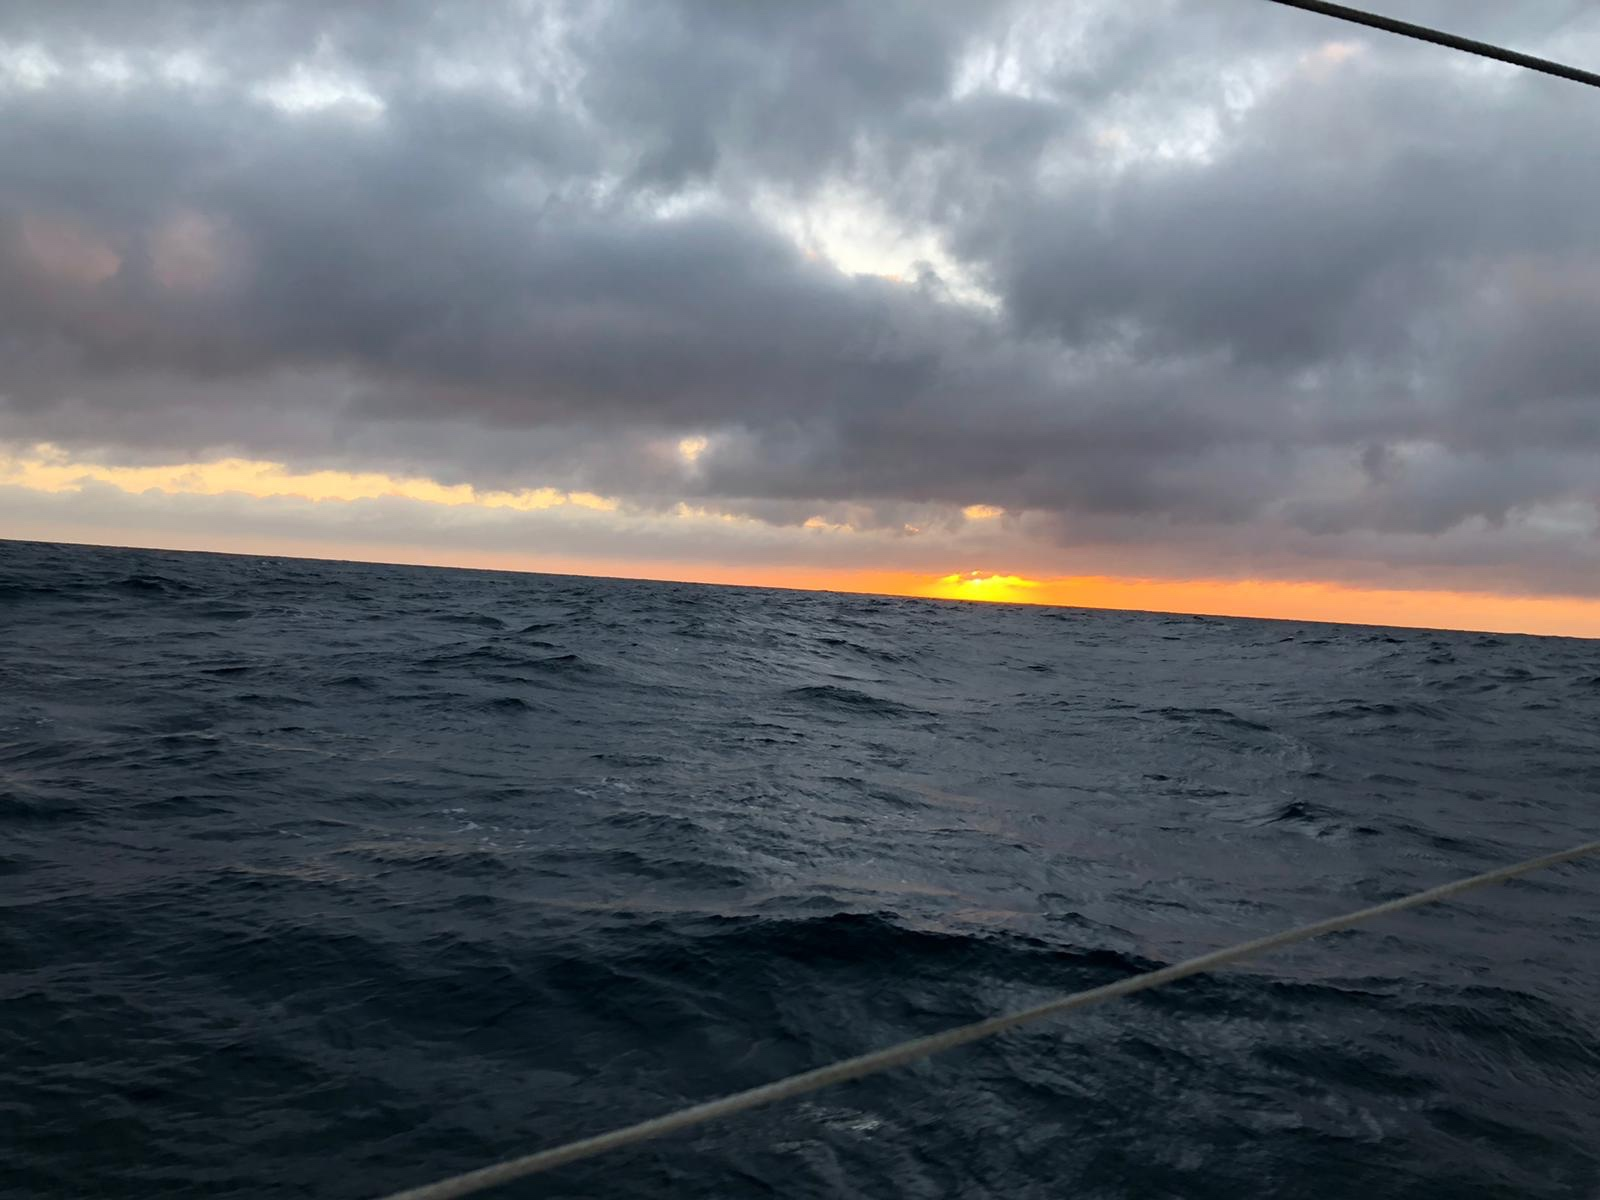 Sunset on day 1 of the crossing